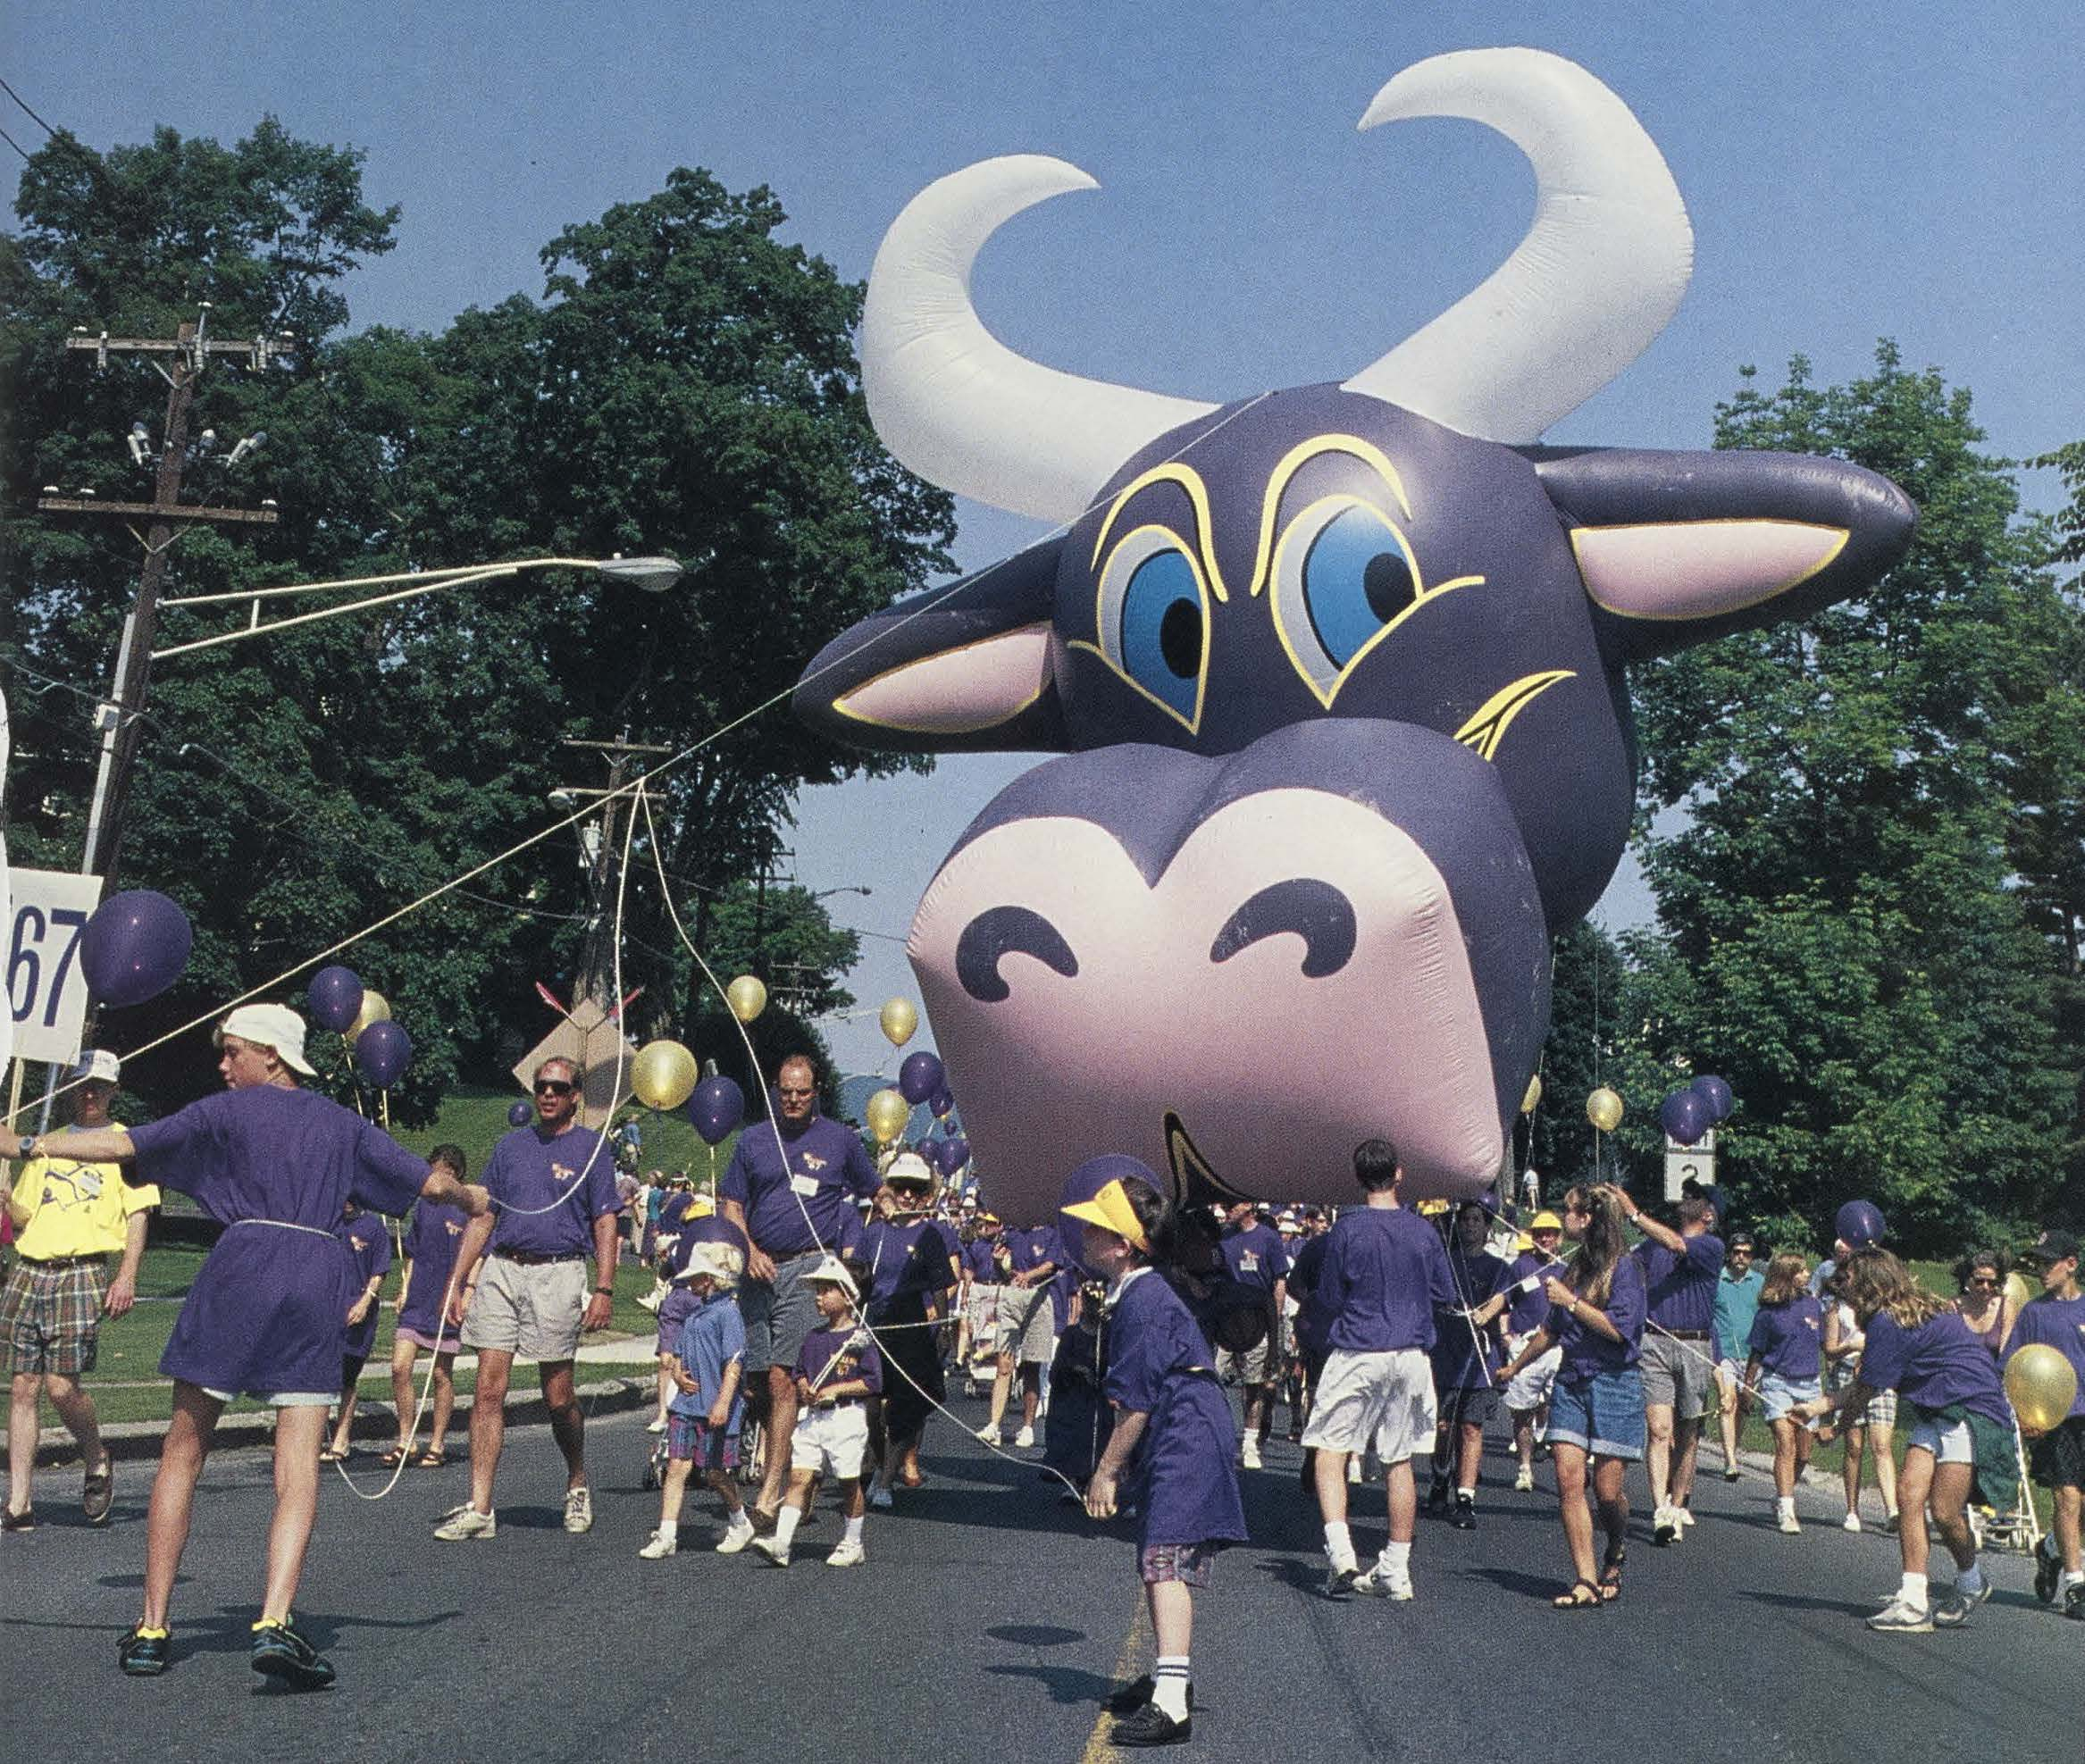 An giant purple cow balloon is carried down the street by parade volunteers wearing purple shirts.